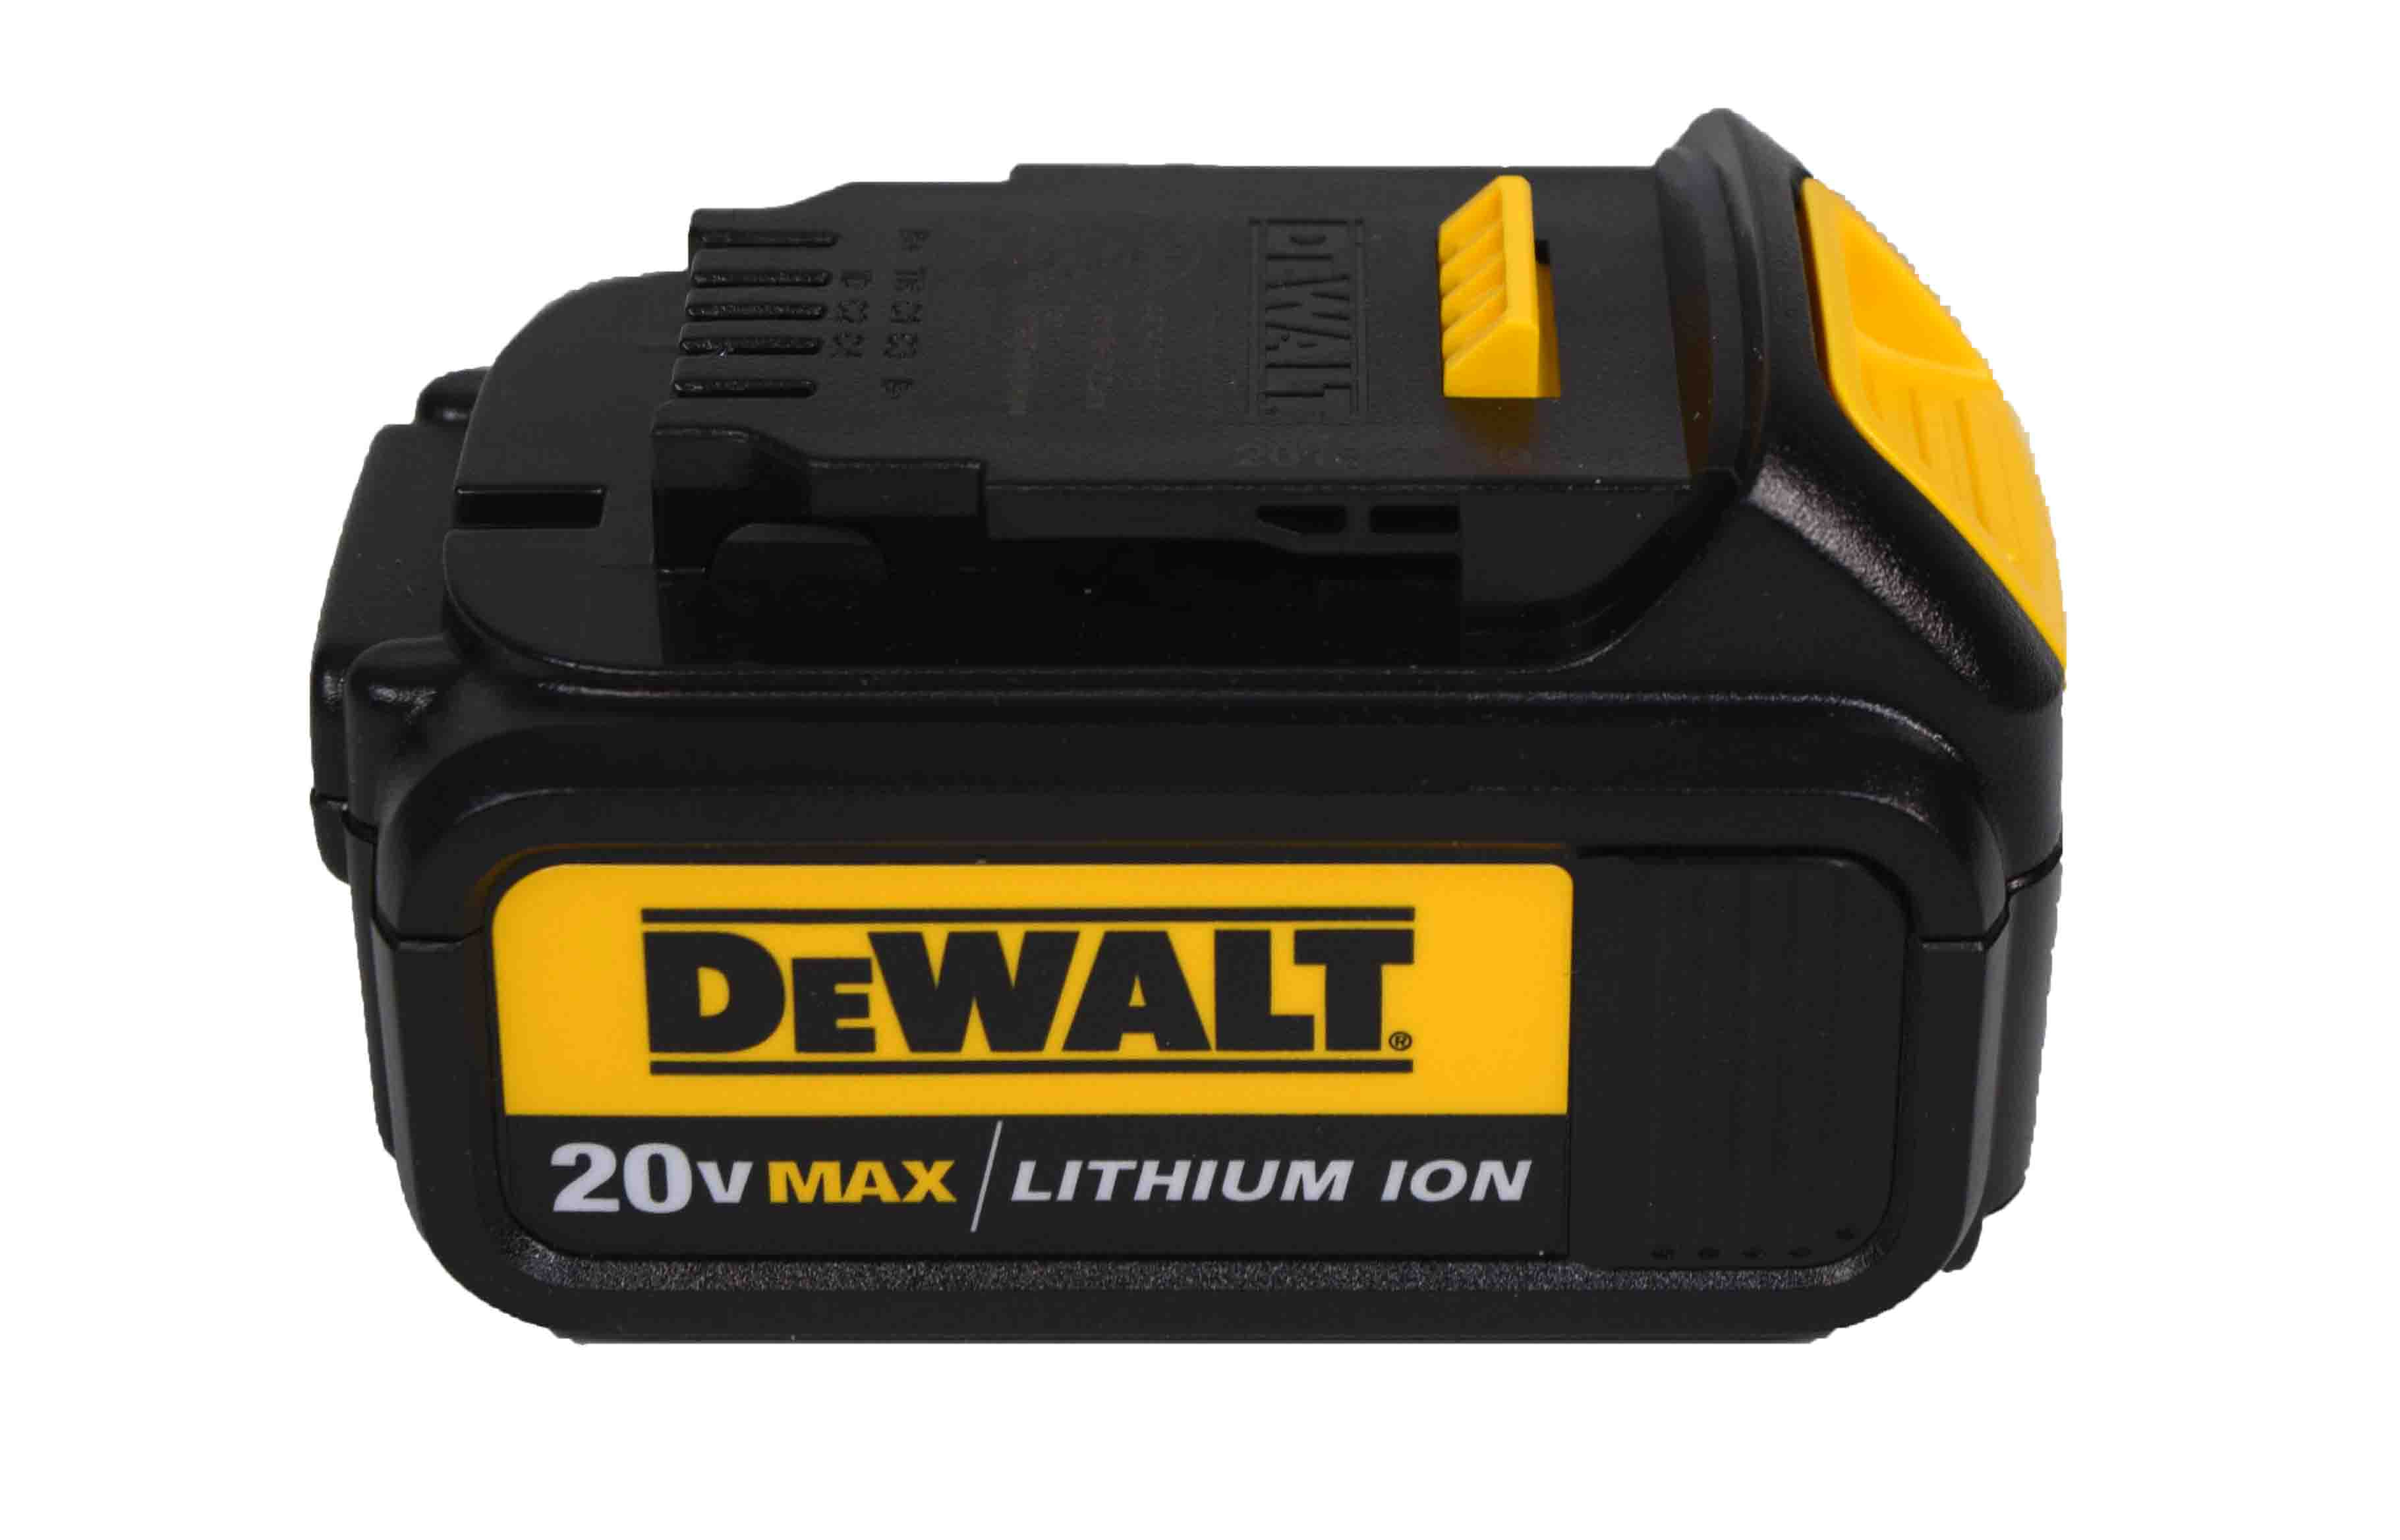 Dewalt-Dcb200-20-Volt-3-Ah-Lithium-Ion-Battery-Single-Pack-image-6